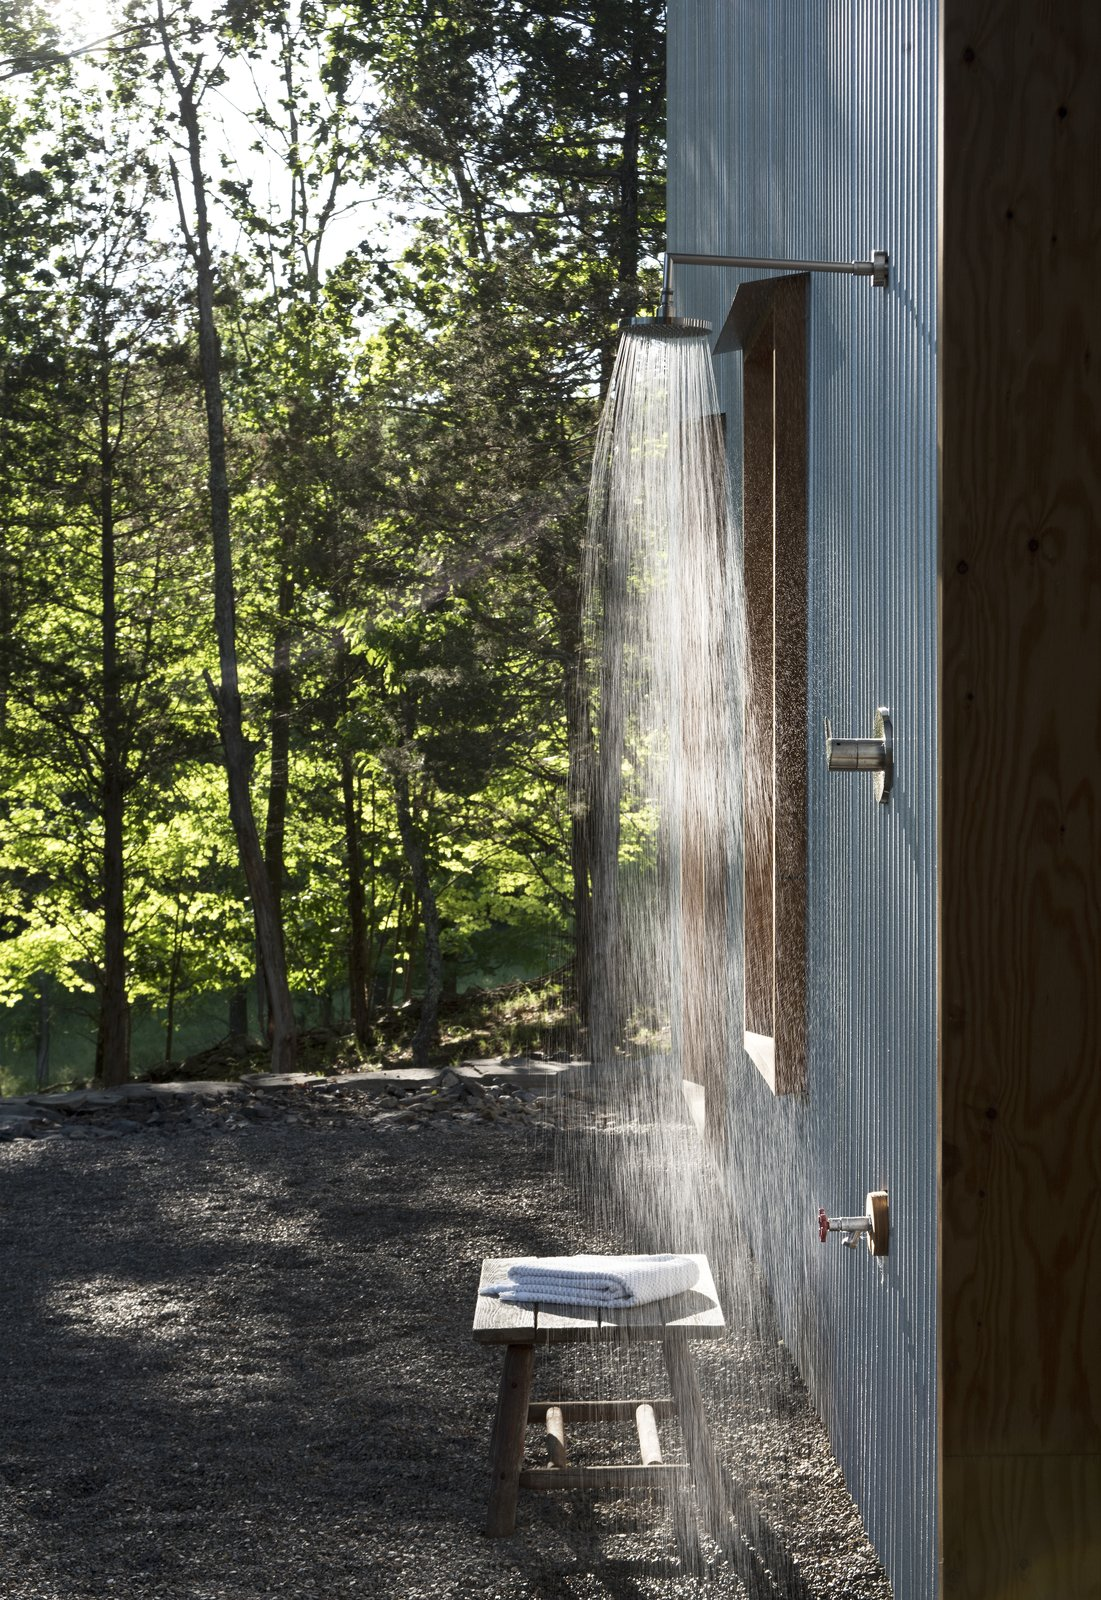 Accord Passive House outdoor shower